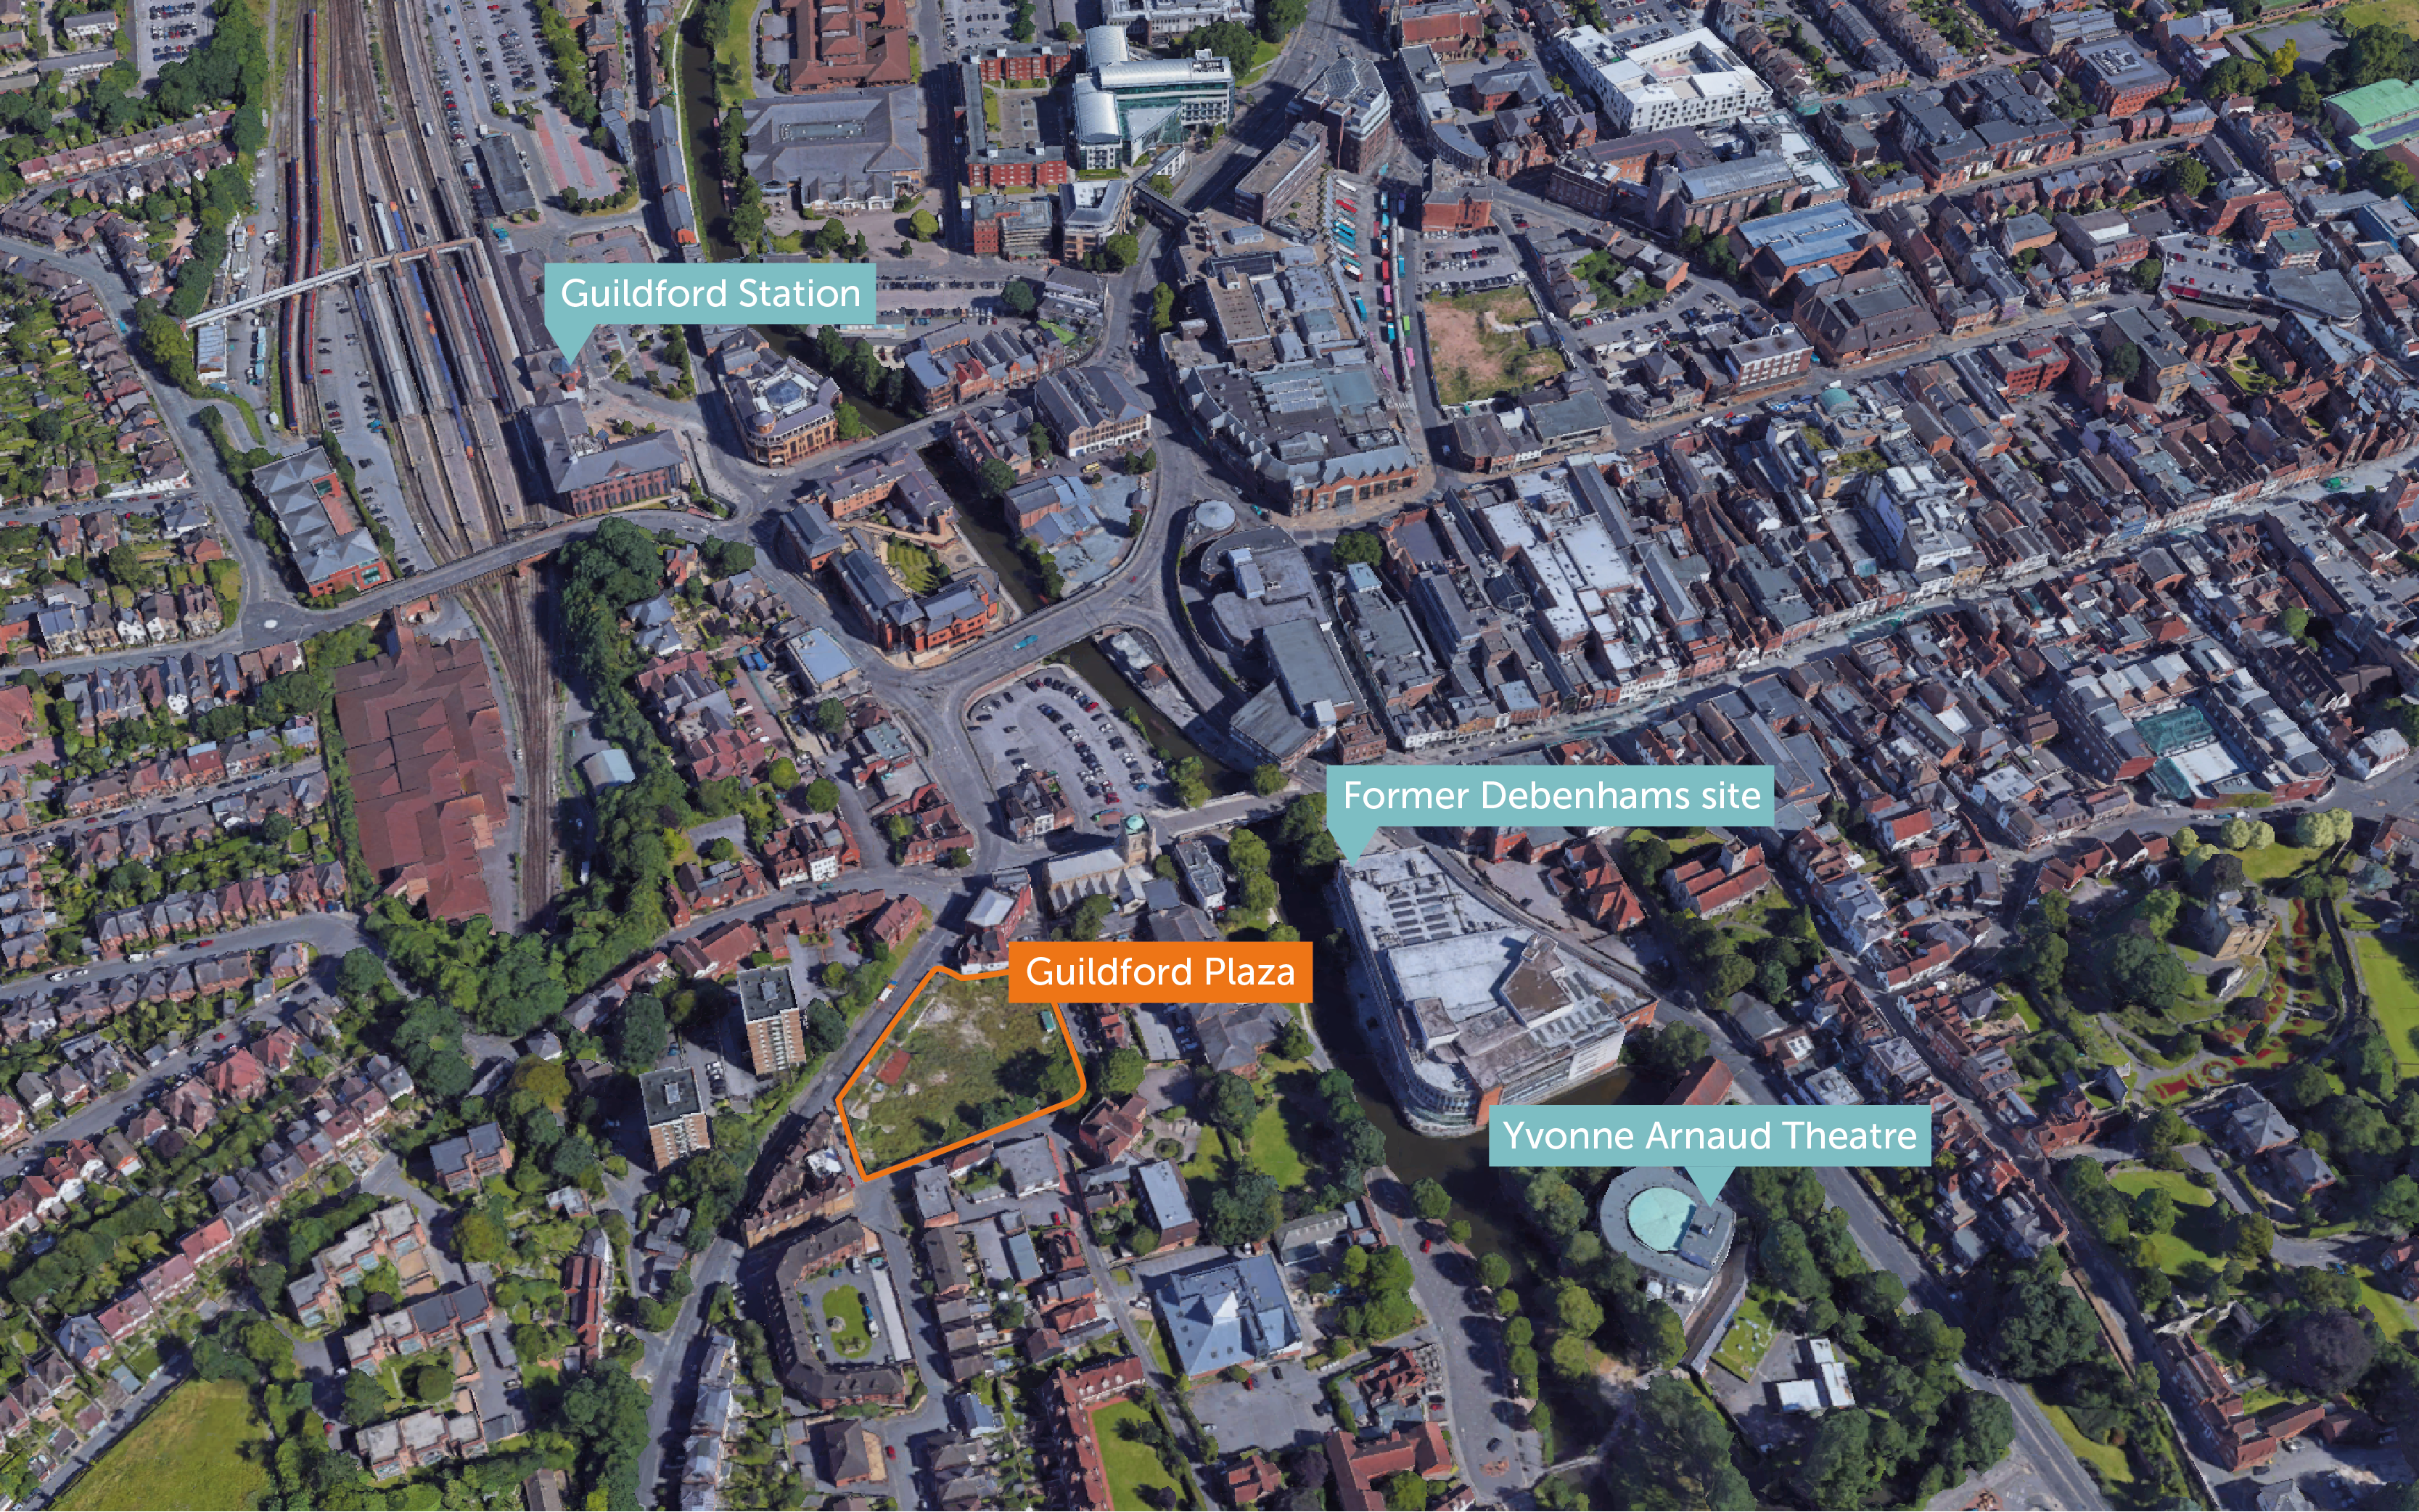 Site map of Guildford Plaza